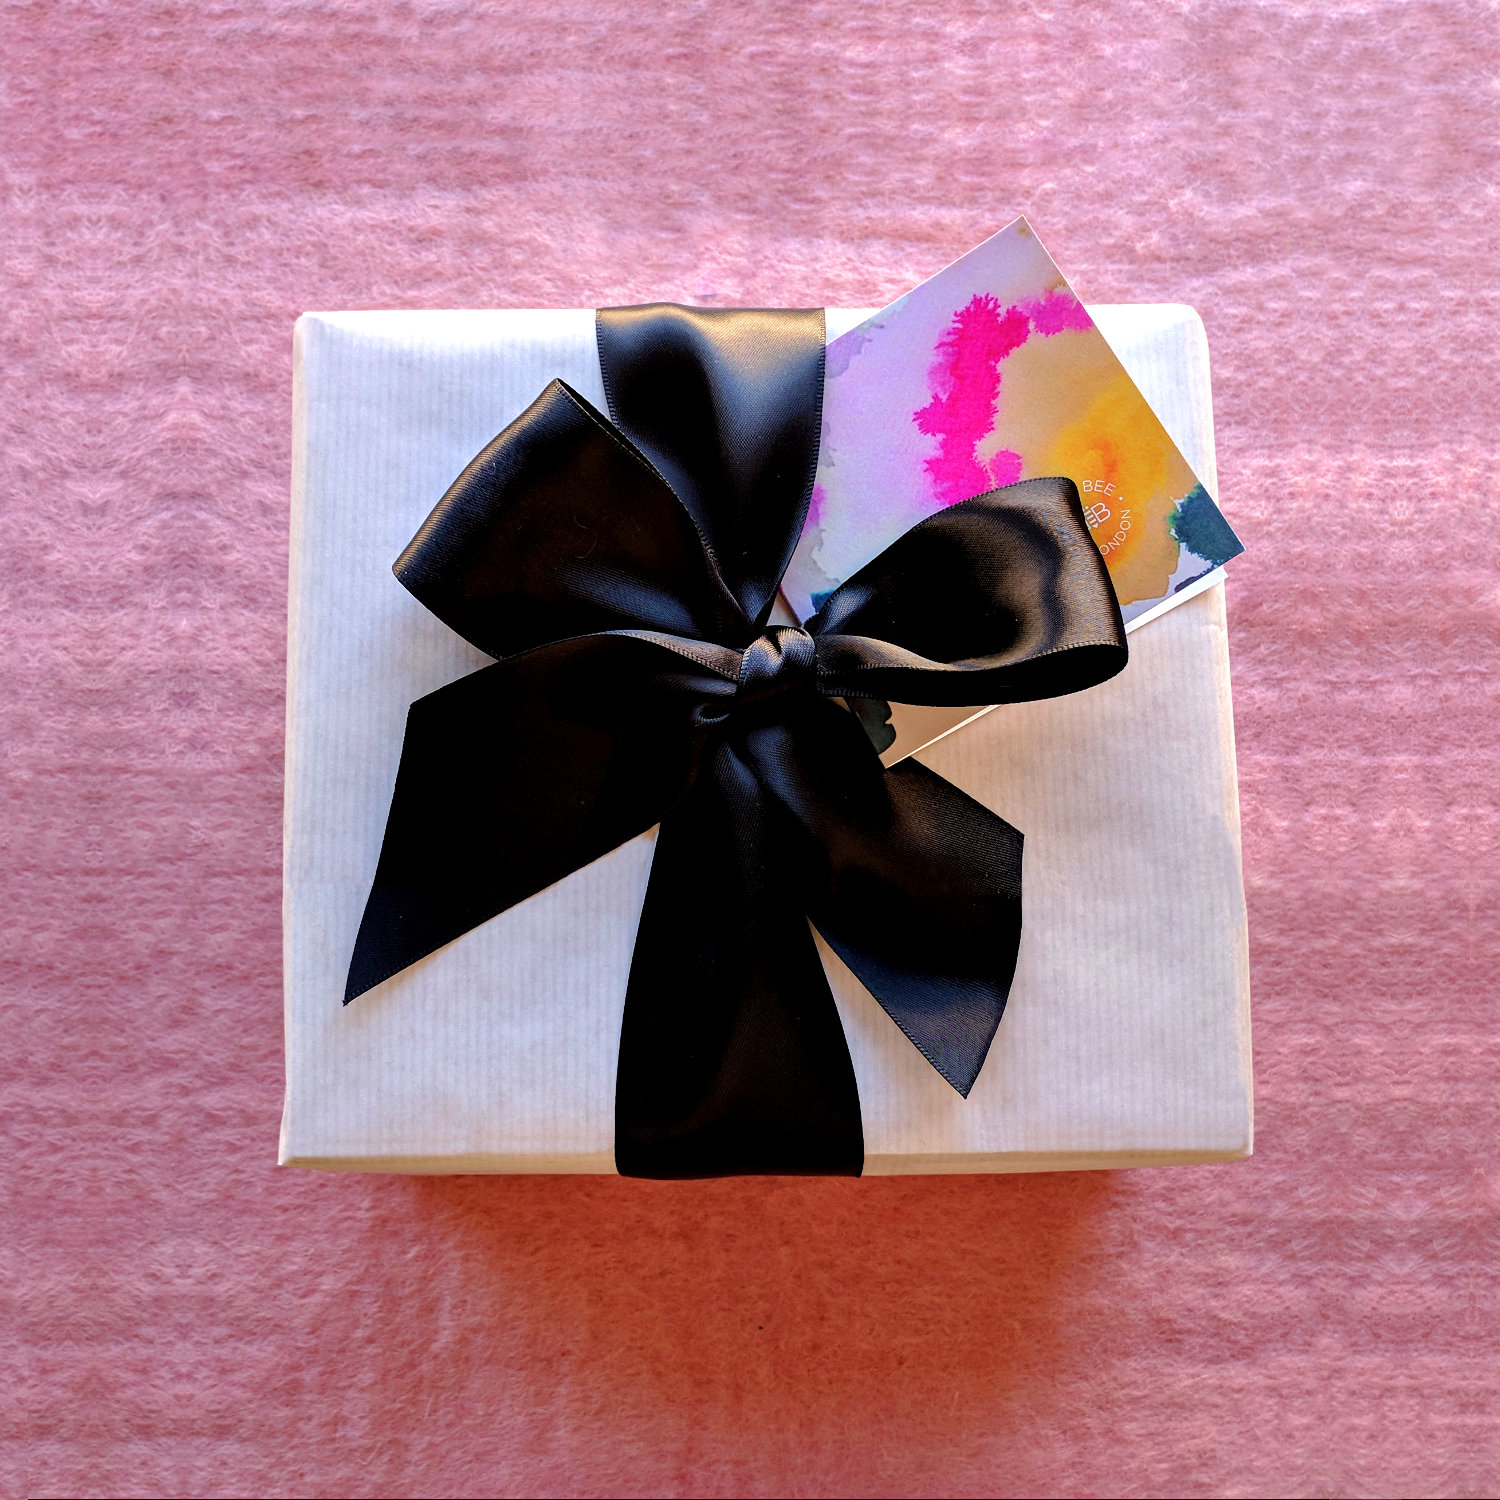 gift_wrapping_bbol_pink_background.jpg